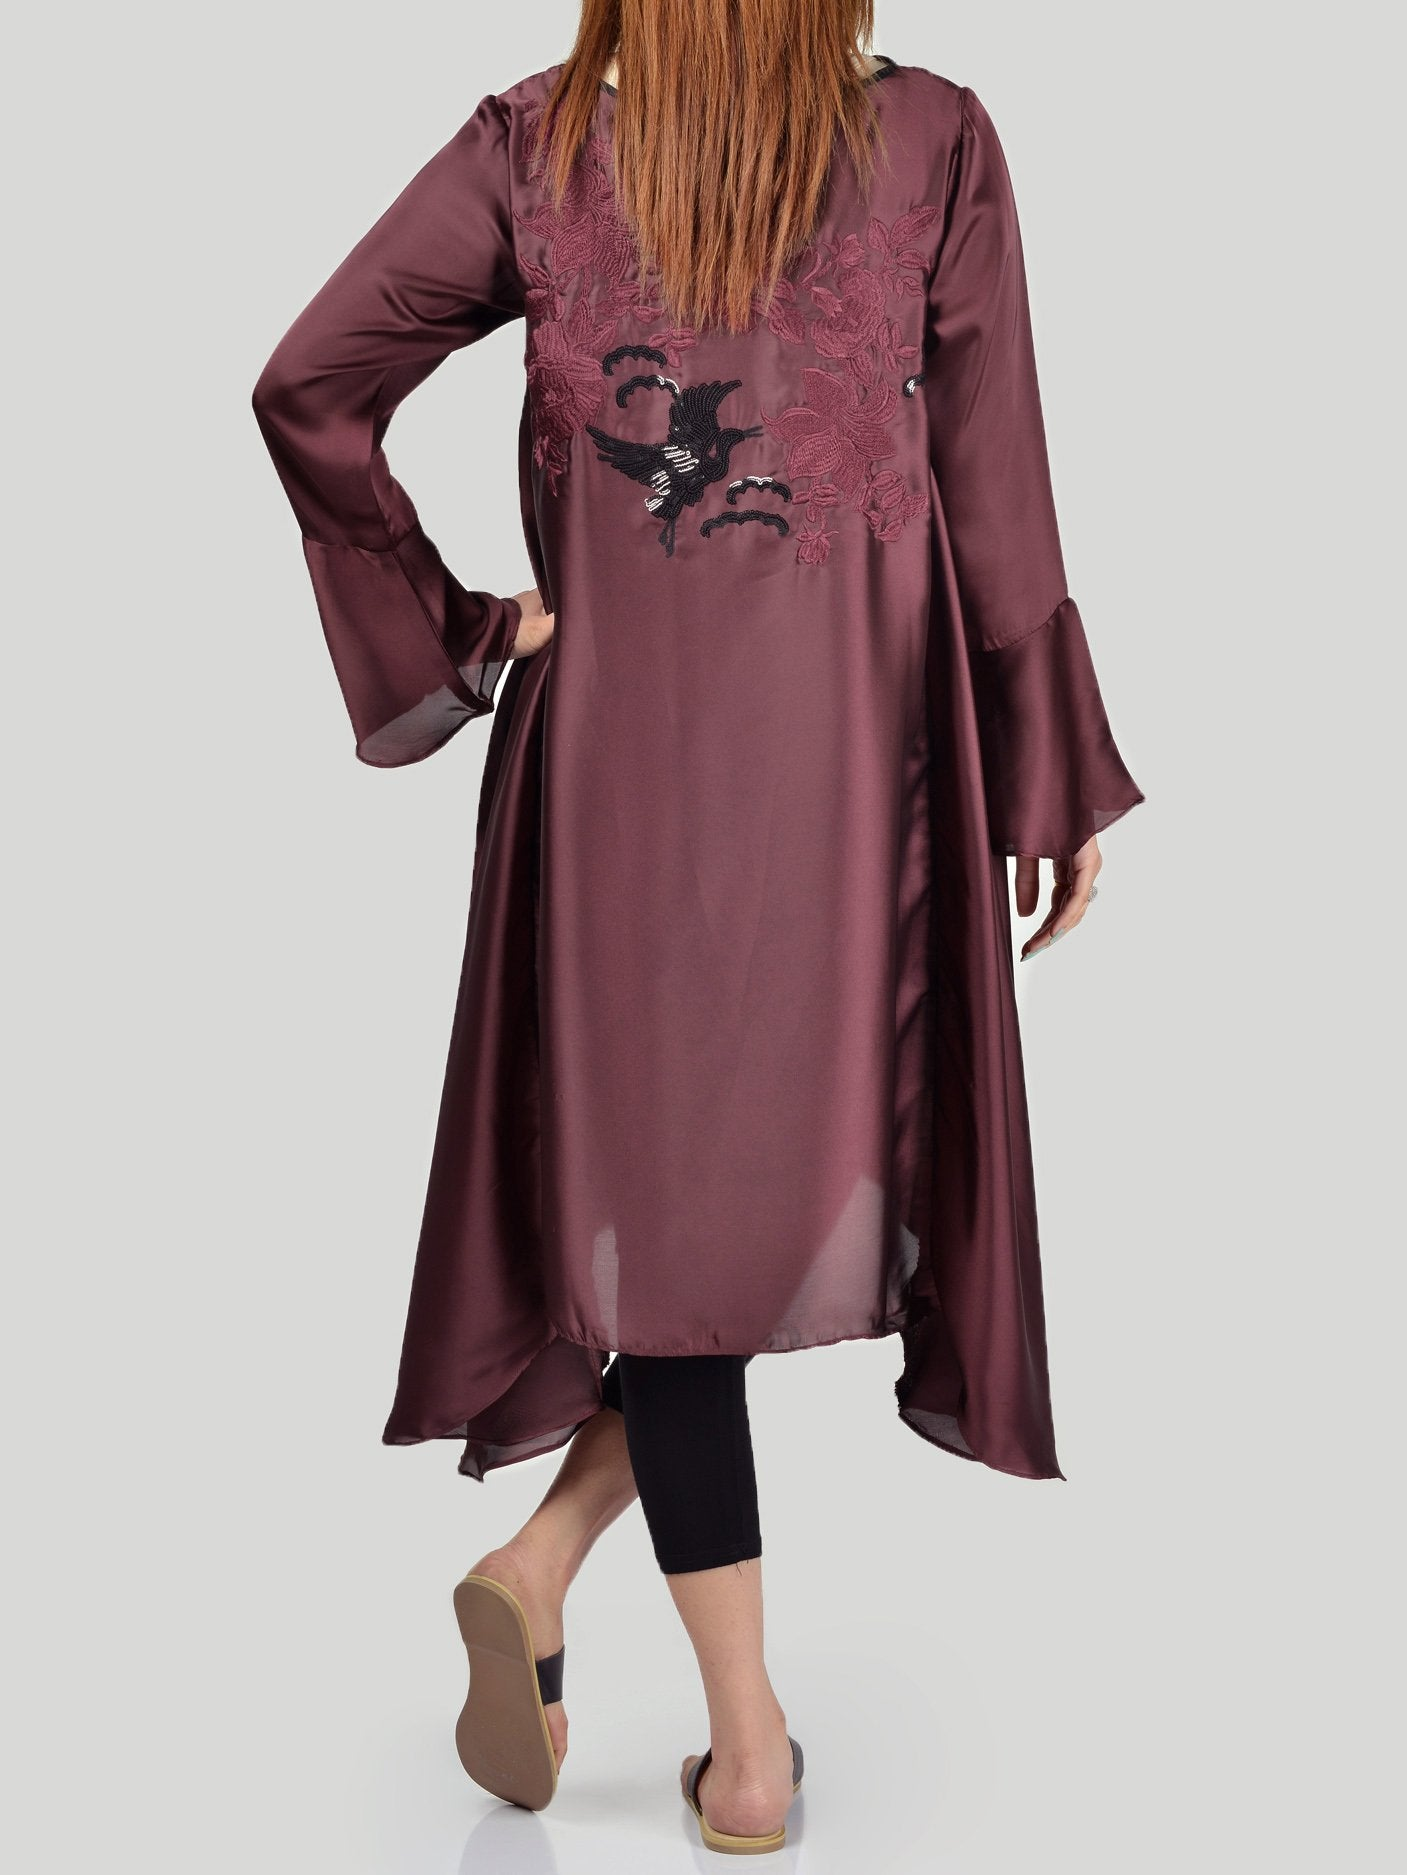 Embroidered Silk Shirt (F0673) by Limelight